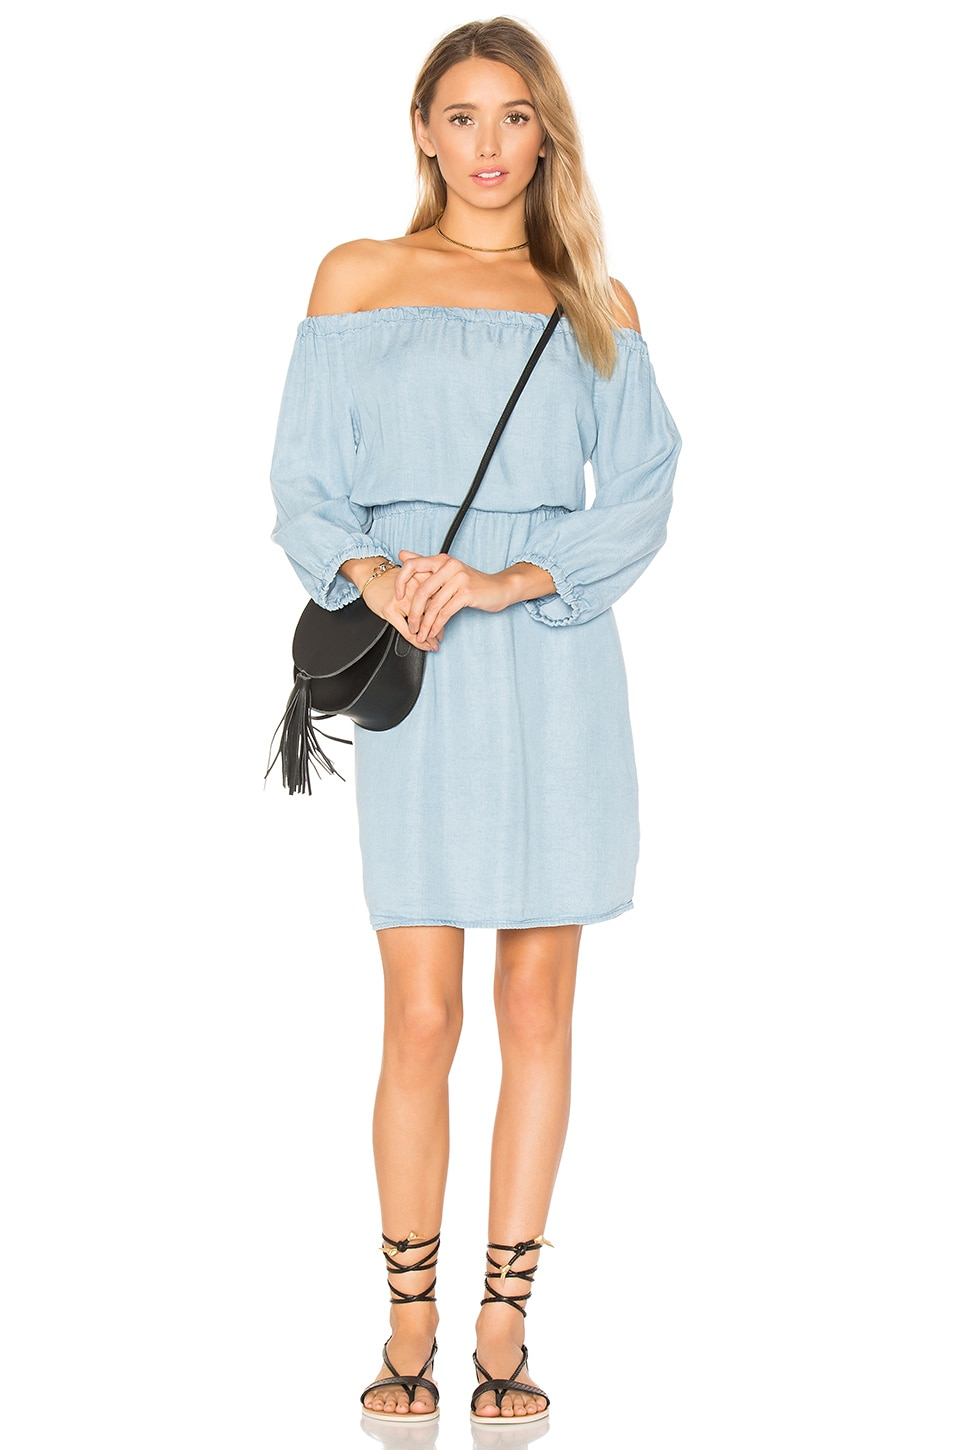 Splendid Off Shoulder Mini Dress in Light Wash